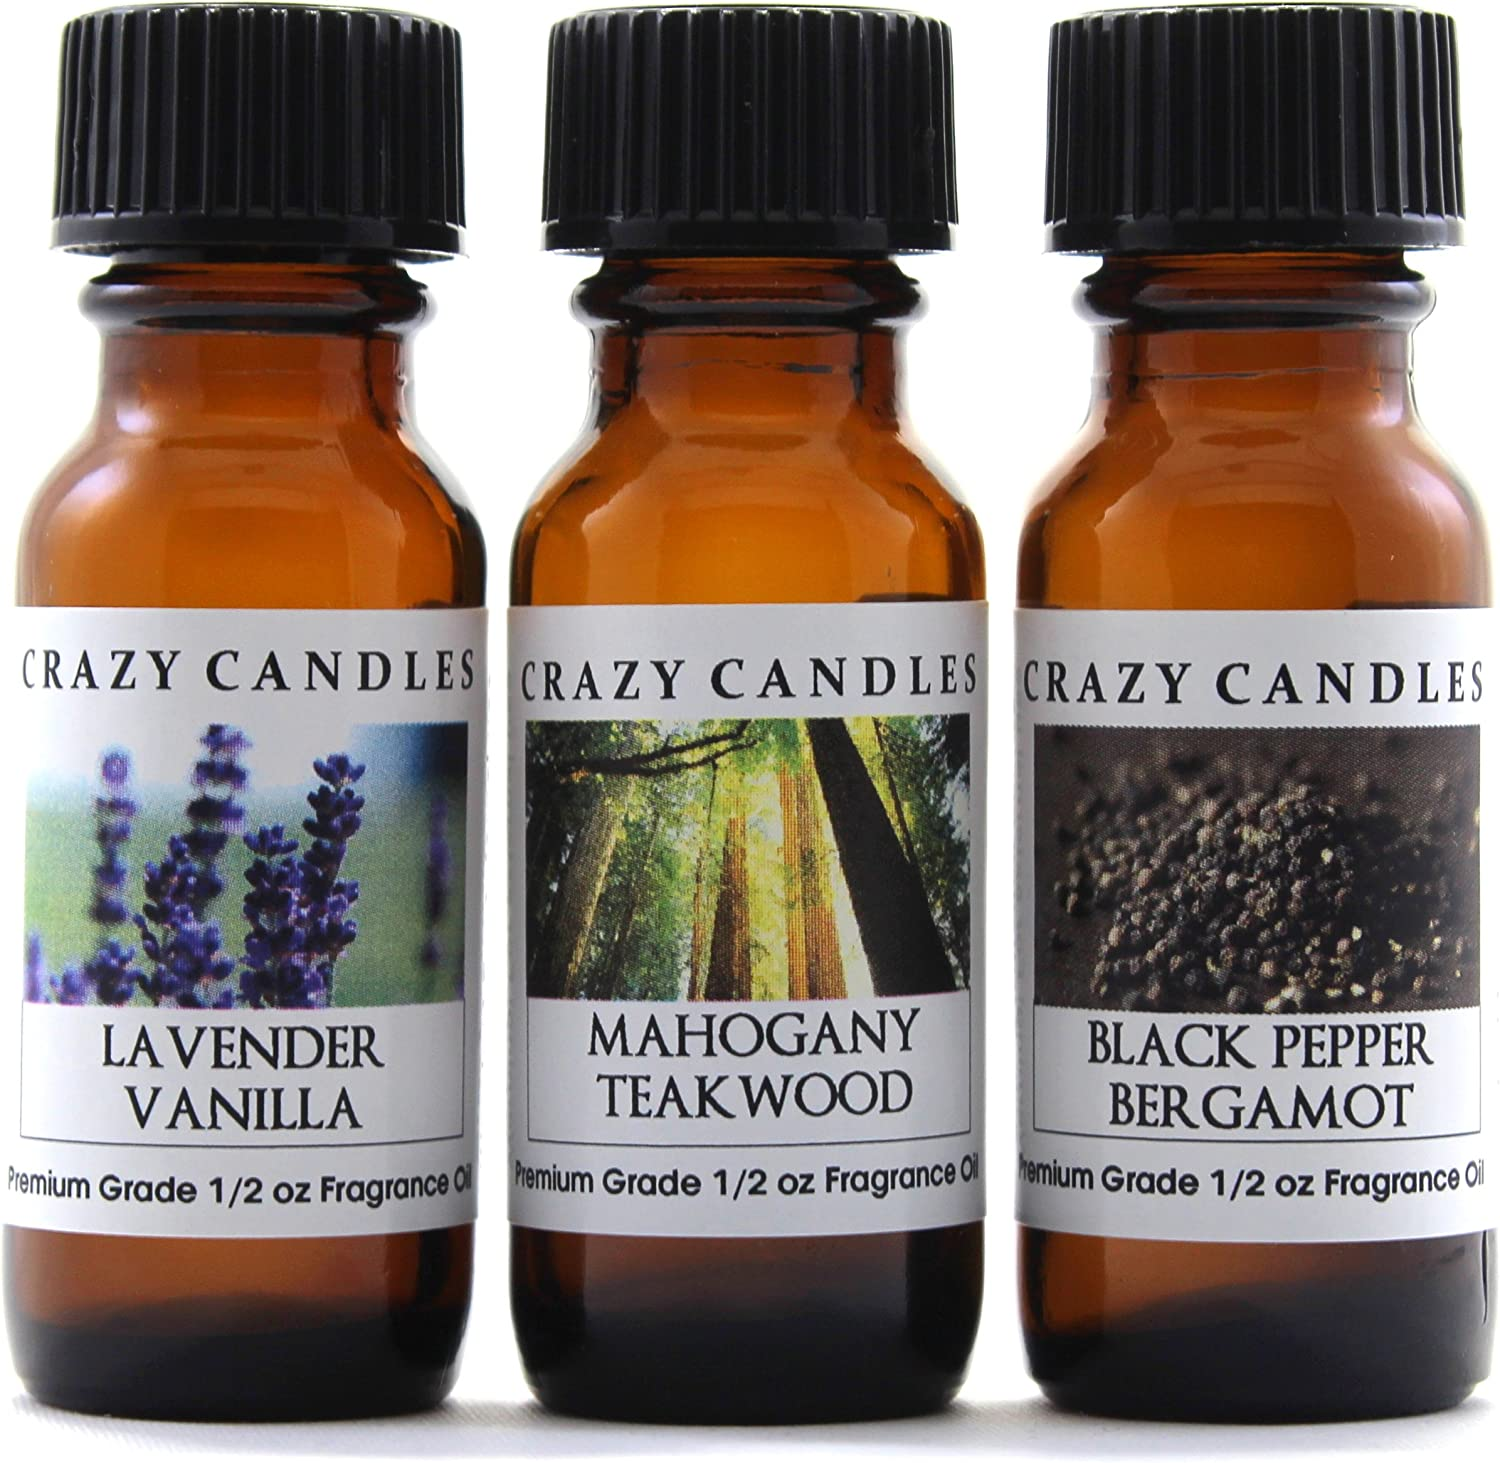 Crazy Candles 3 Bottles Set, 1 Lavender Vanilla, 1 Mahogany Teakwood, 1 Black Pepper Bergamot 1/2 Fl Oz Each (15ml) Premium Grade Scented Fragrance Oils